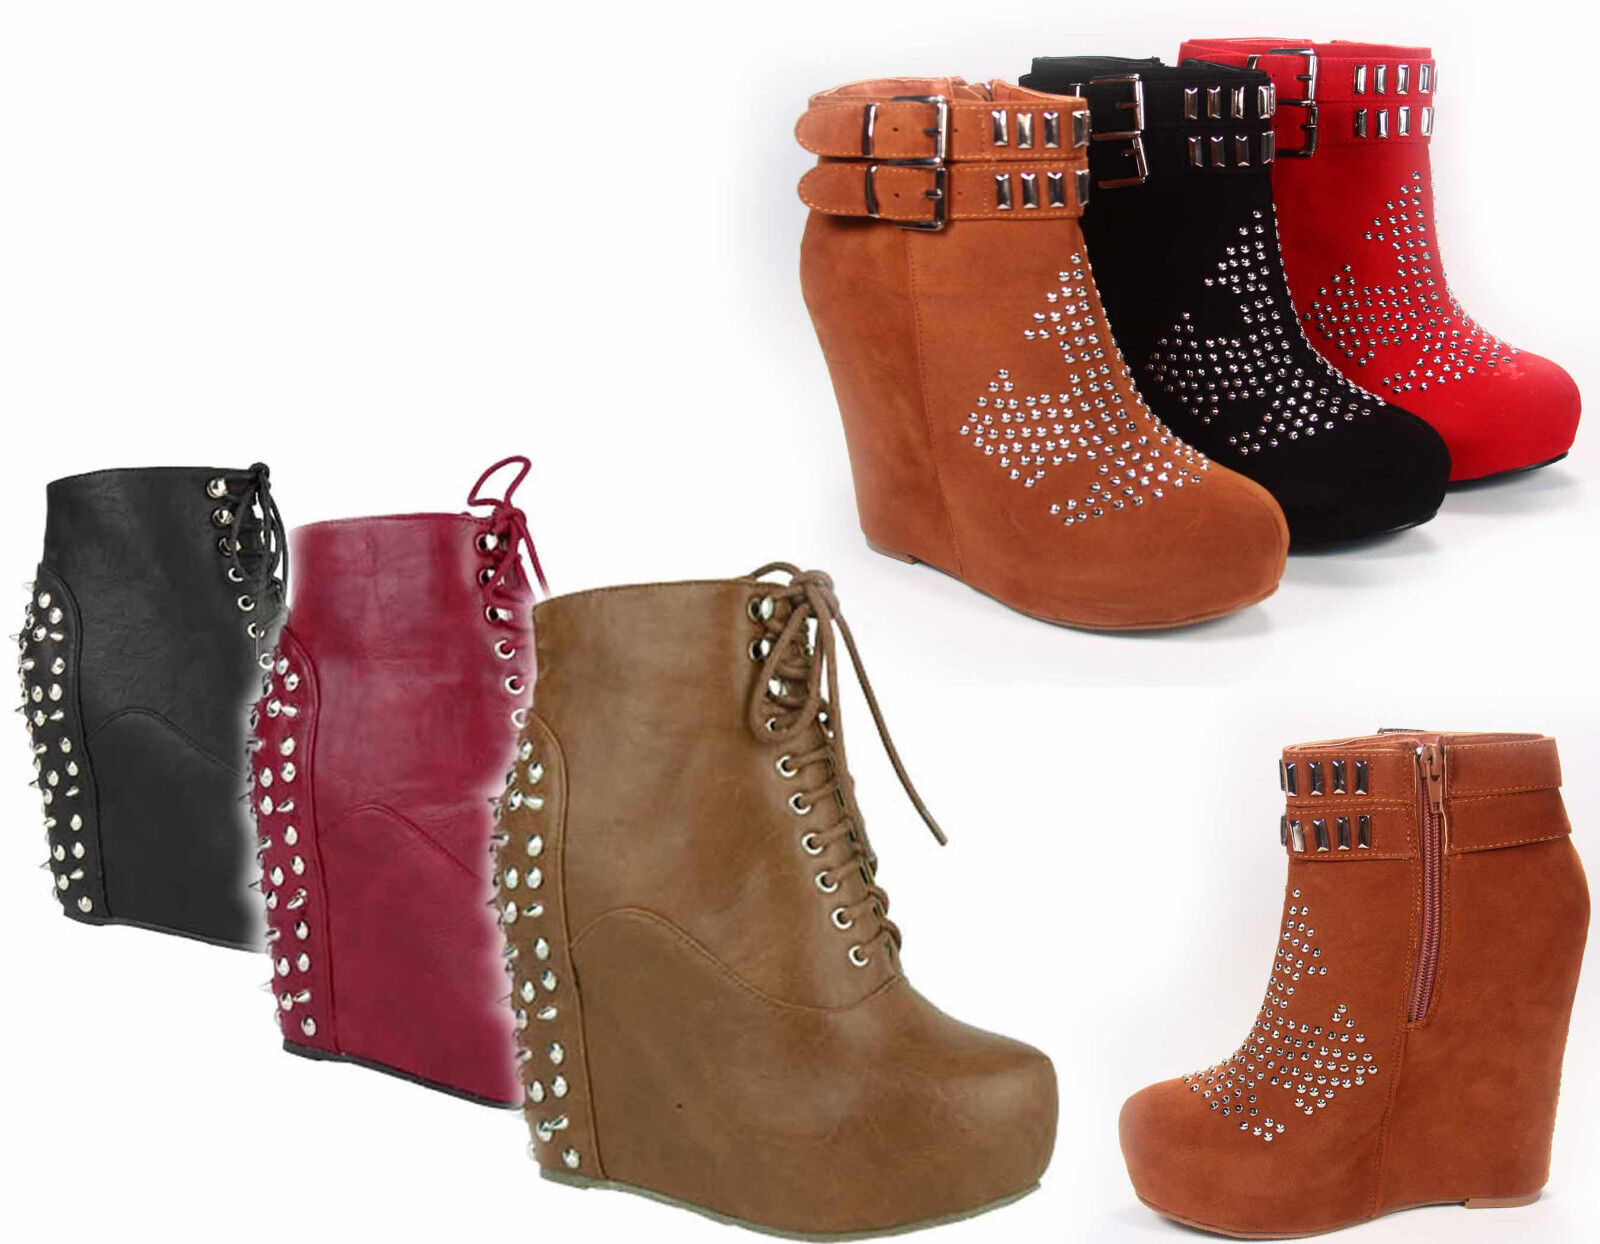 NEW Women's Zipper Studded Spike Platform Wedge Bootie Shoes Black Tan Red 5 -10